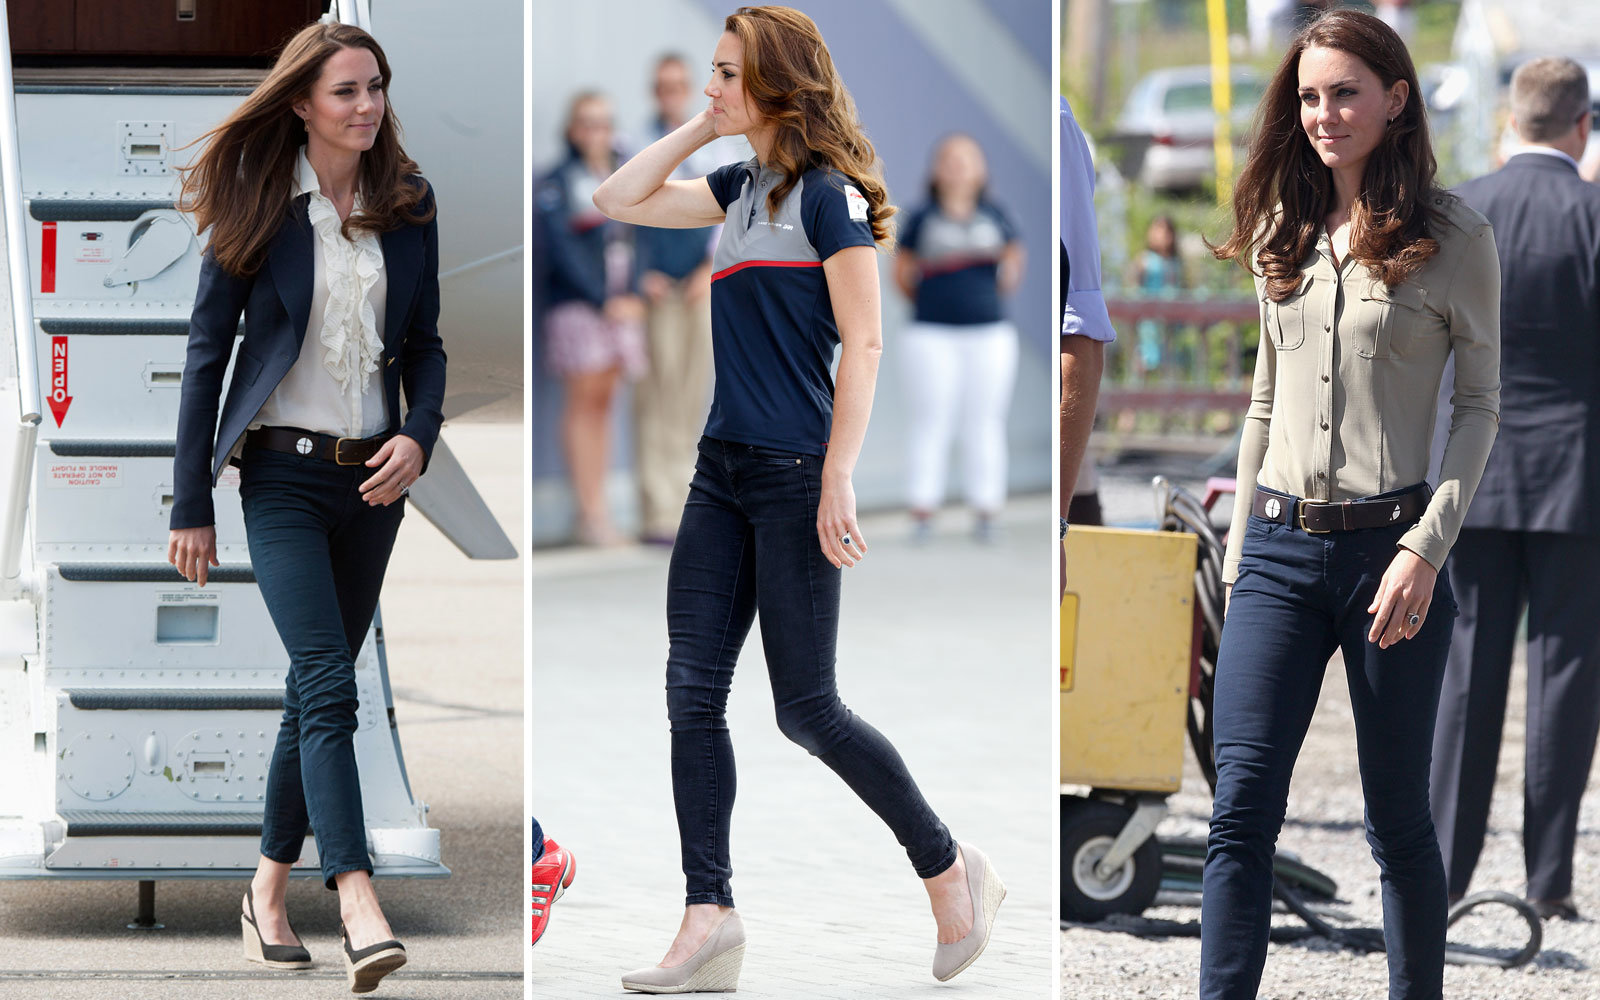 beb64ddb197d A Great-Fitting Pair of Skinny Jeans. Kate Middleton Travel Outfit  Inspiration